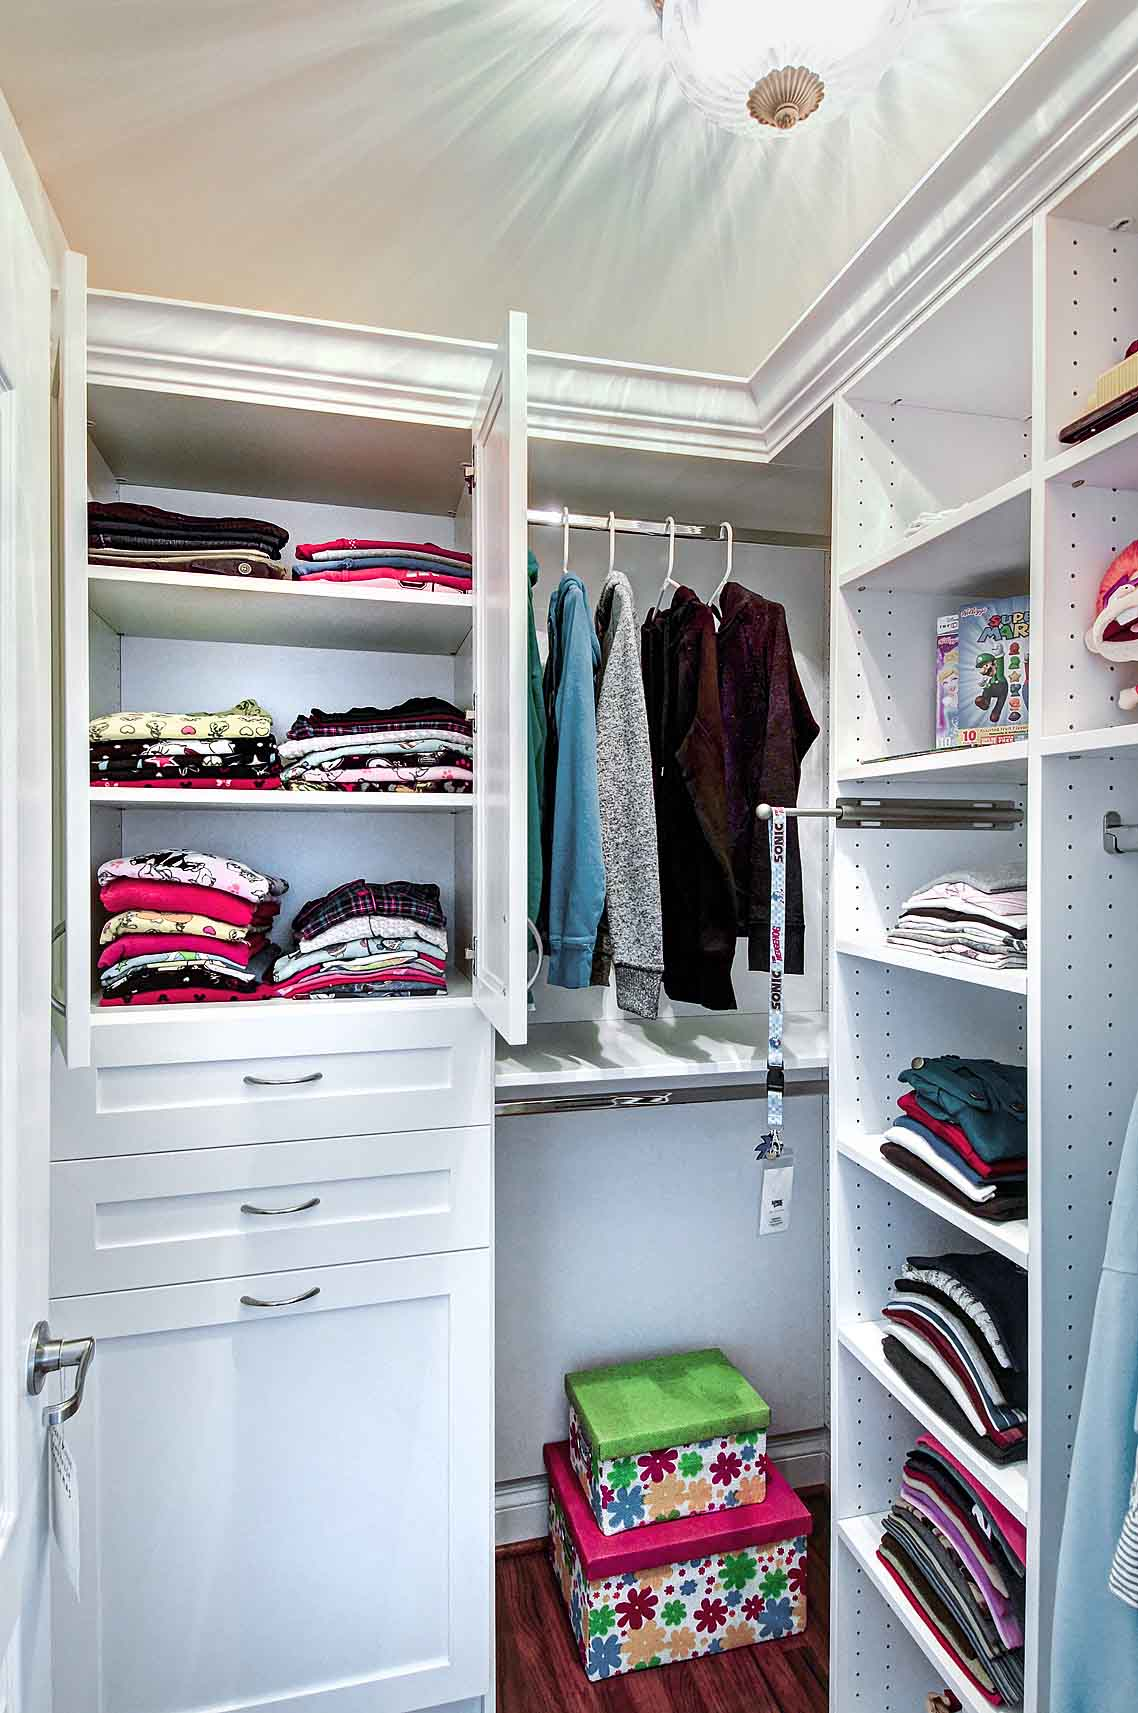 Organized walk-in closet with storage space optimized